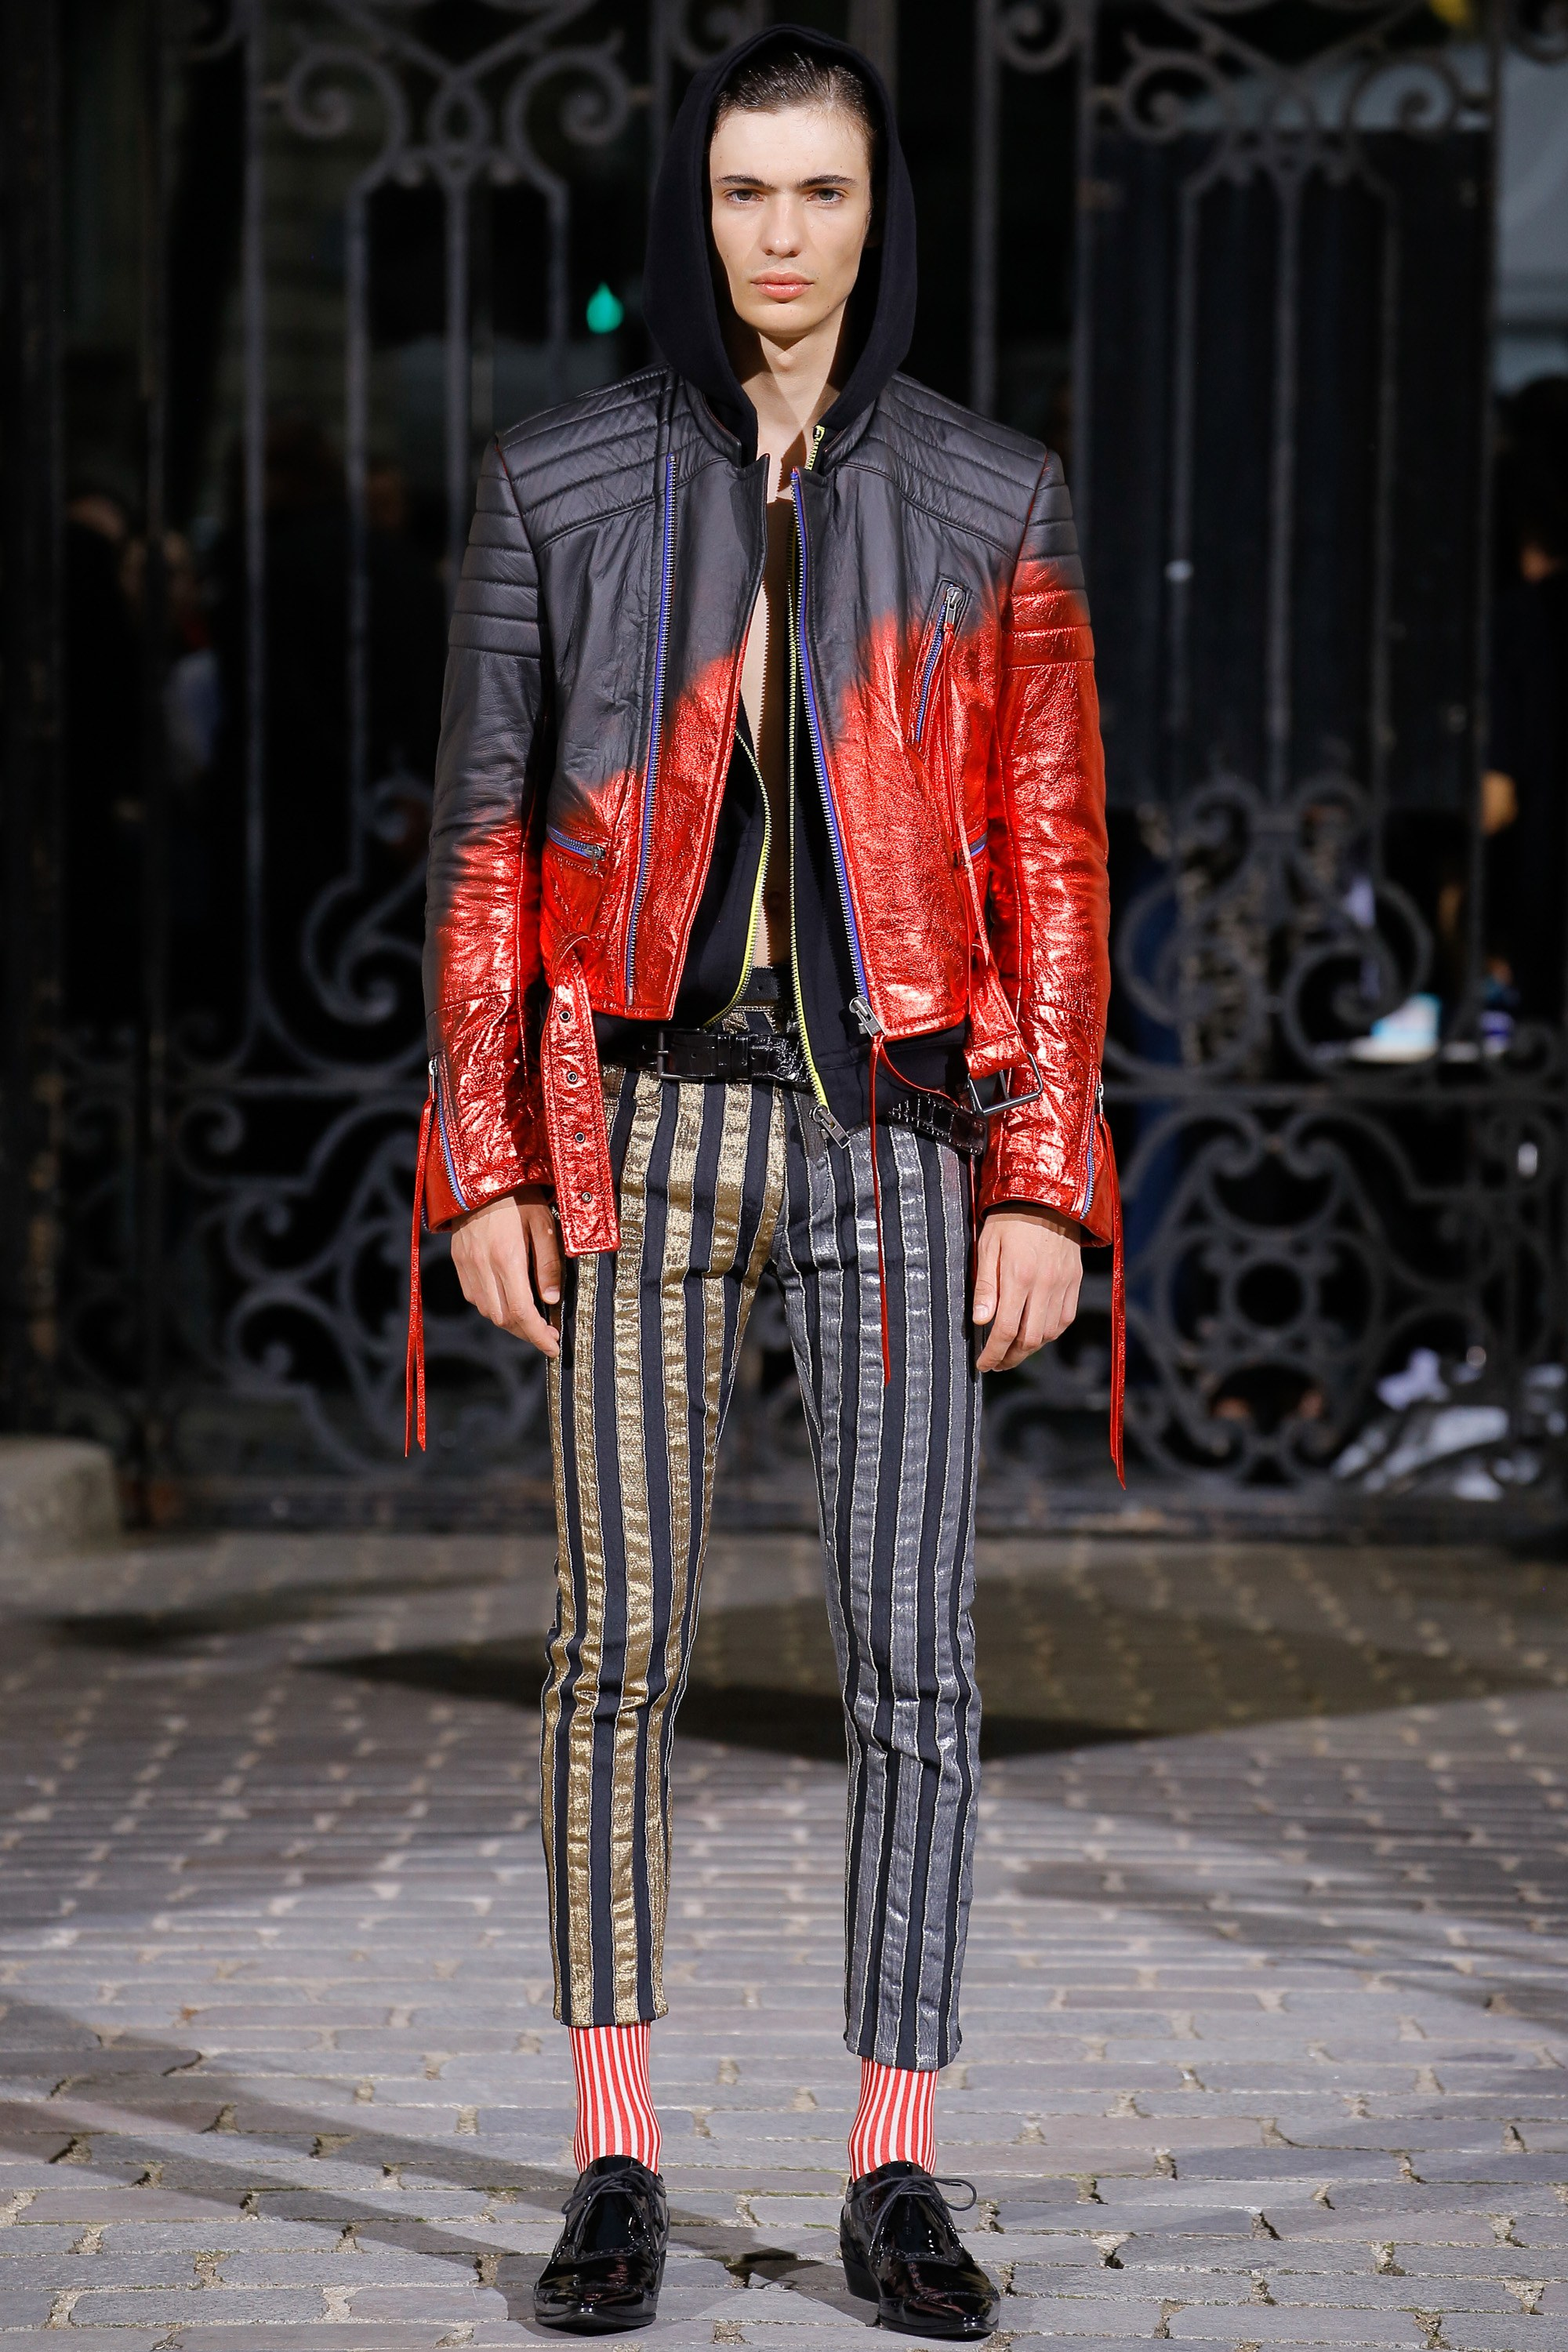 Ackermann haider mens spring runway recommend to wear for spring in 2019